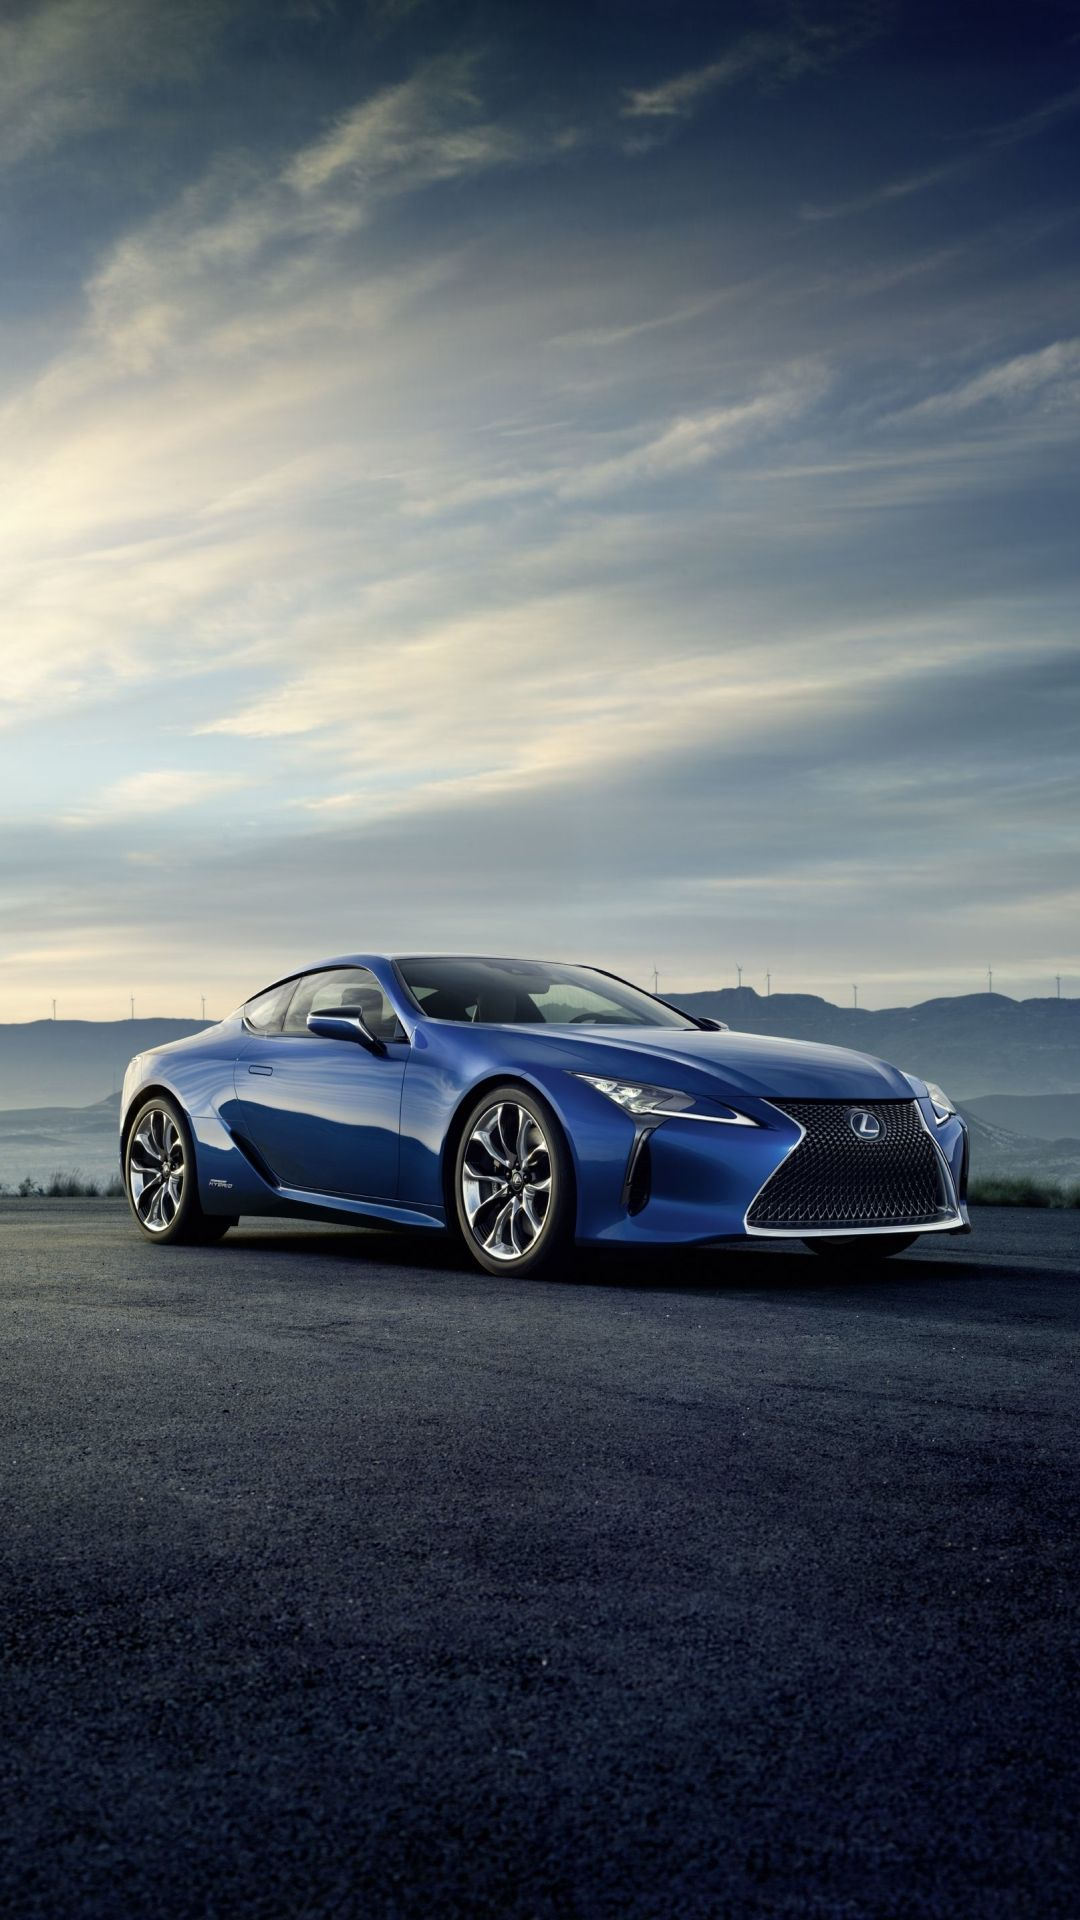 Lexus Lc 500 Iphone Wallpaper Free Is 4k Wallpaper Lexus Lc